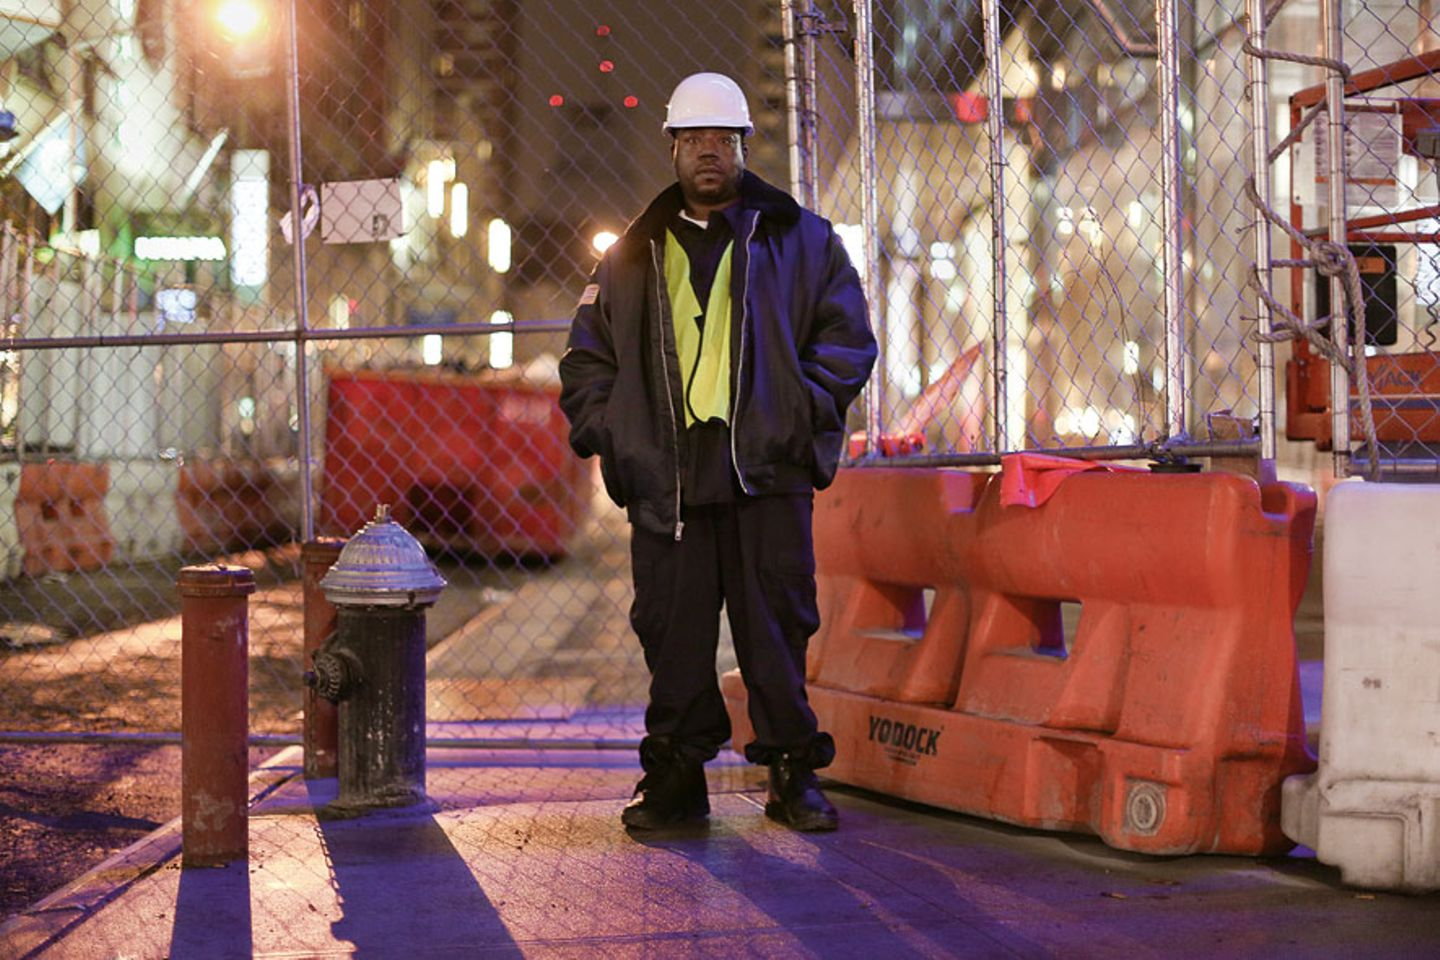 Humans of New York, 16. Story